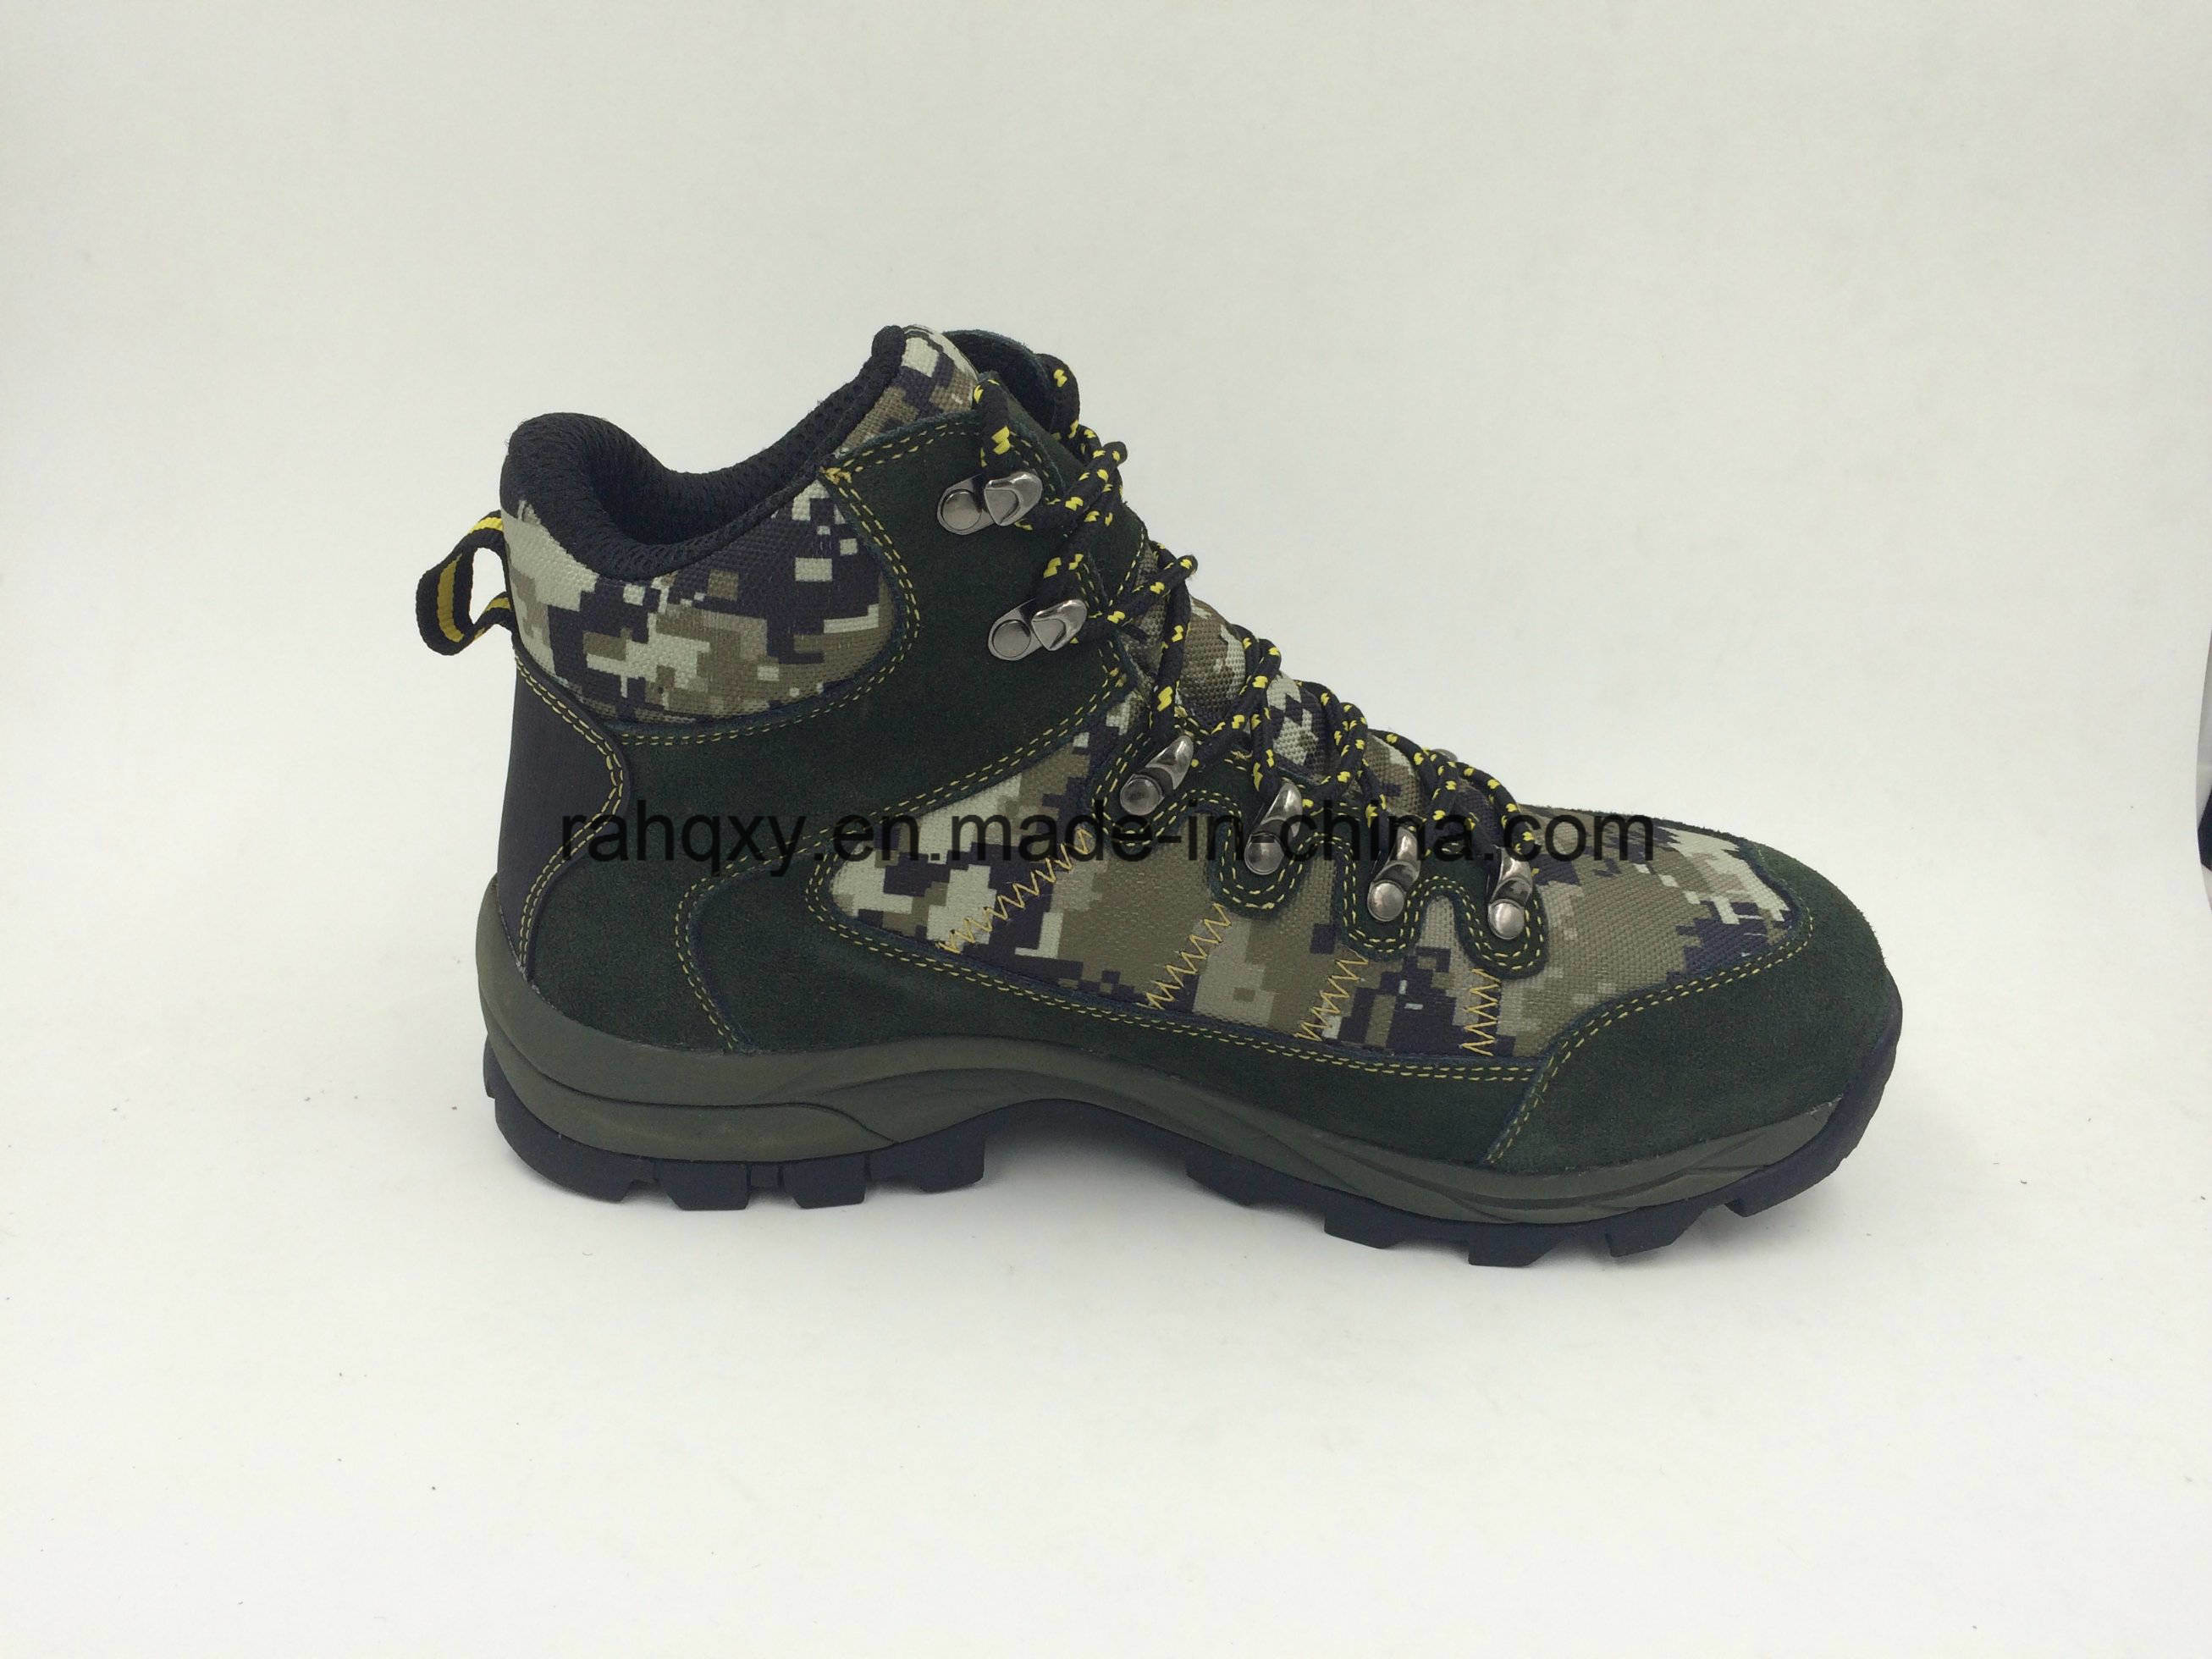 Split Leather Camo Safety Boots (16072)